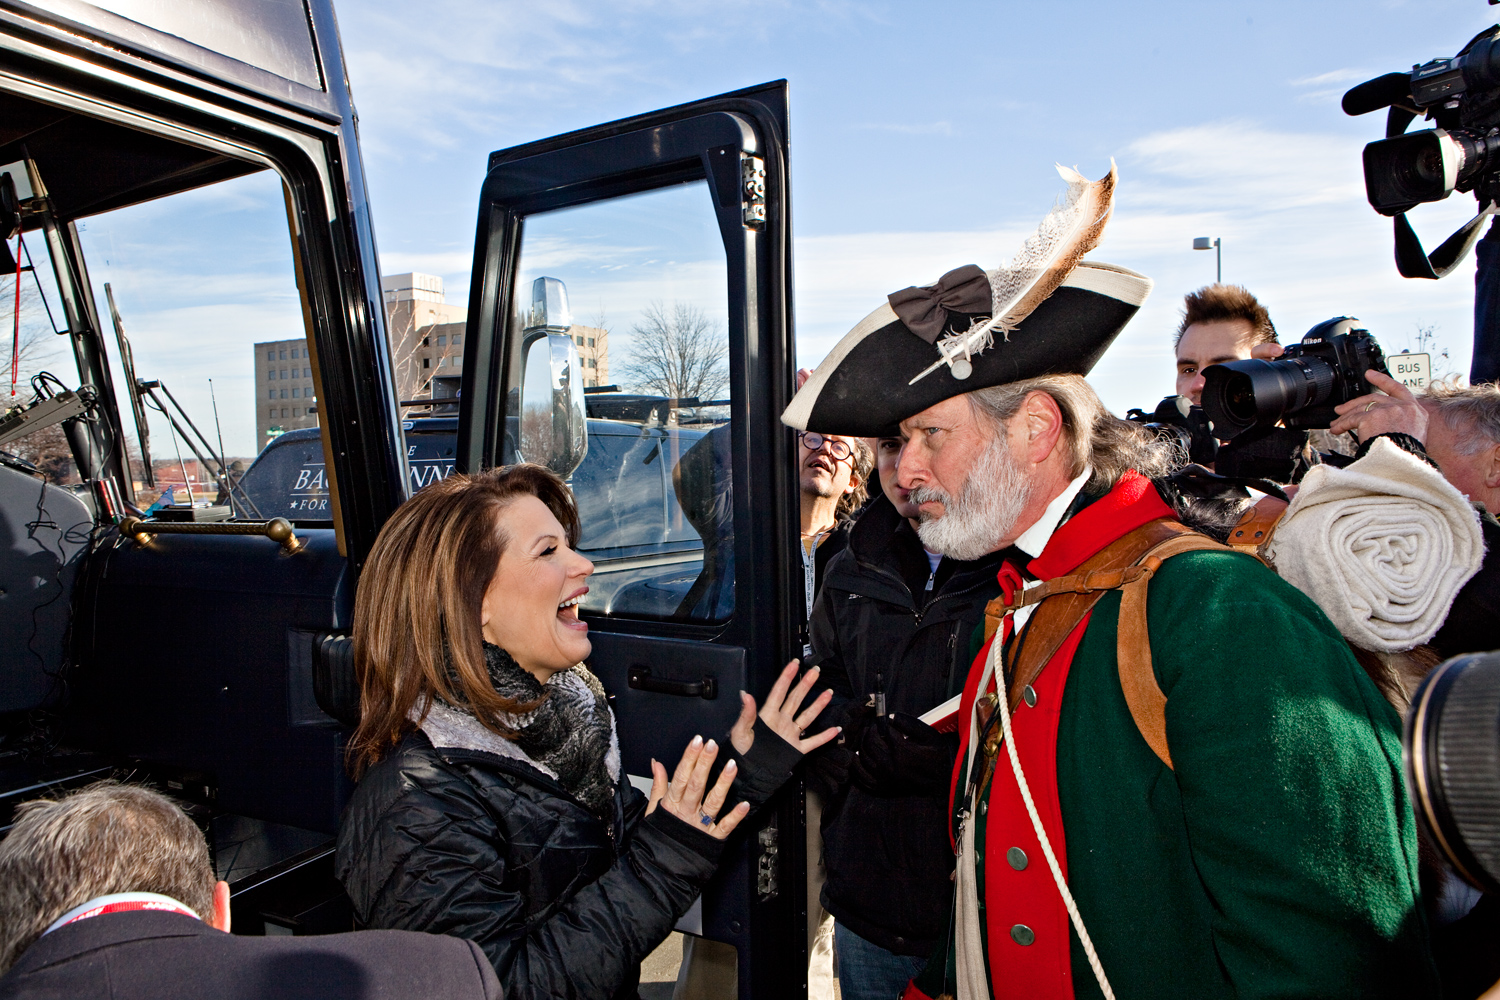 William Temple, a Revolutionary War reenactor, who has become an unofficial tea party mascot, greets Michele Bachmann at a campaign stop called 'Rock the Caucus,' at Valley High School in West Des Moines, Iowa on January 3, 2012.